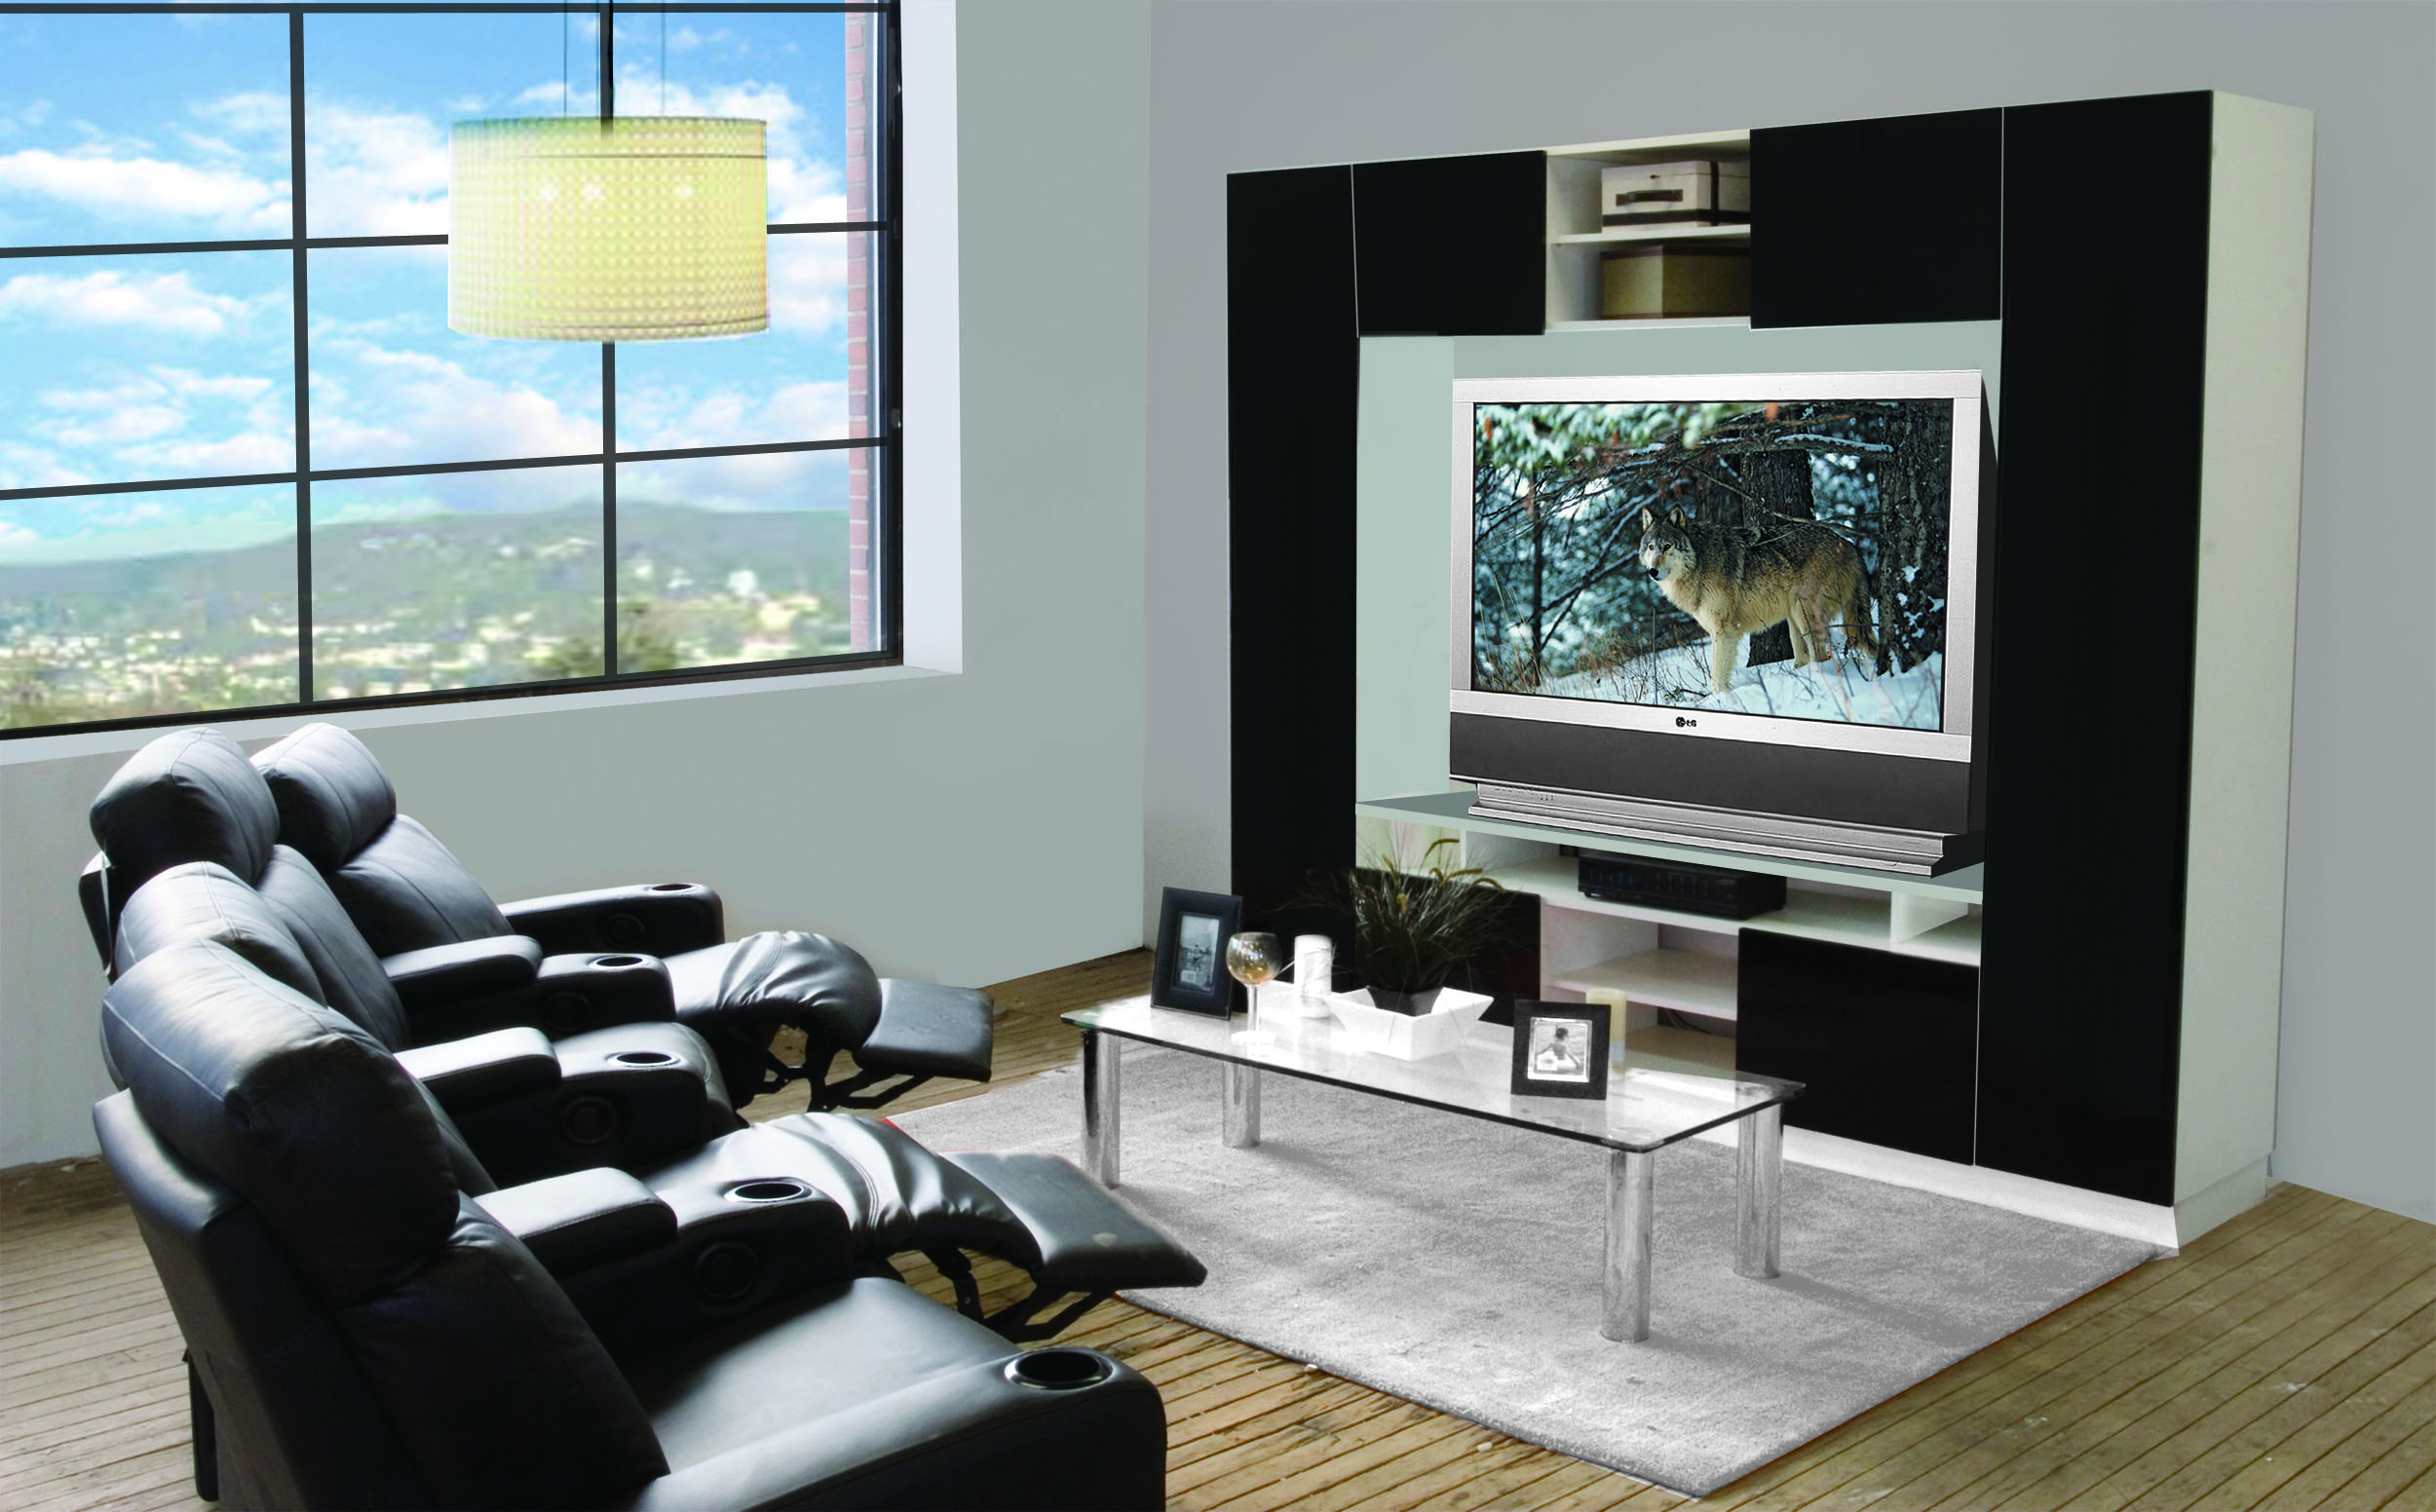 Give Your Home Theater The Presentation It Deserves